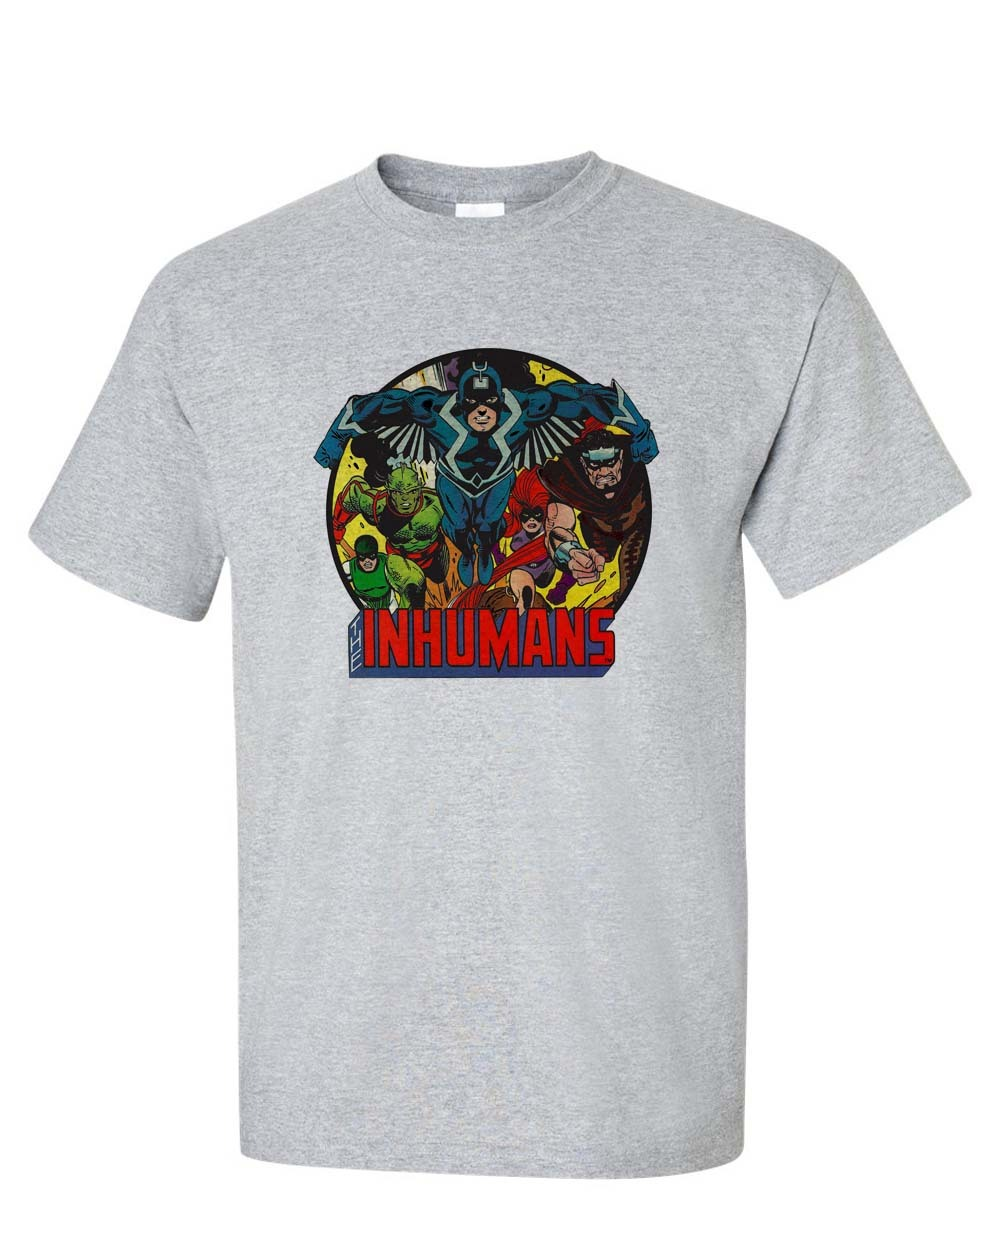 The Inhumans T-shirt Marvel Comics superhero cotton blend graphic printed tee